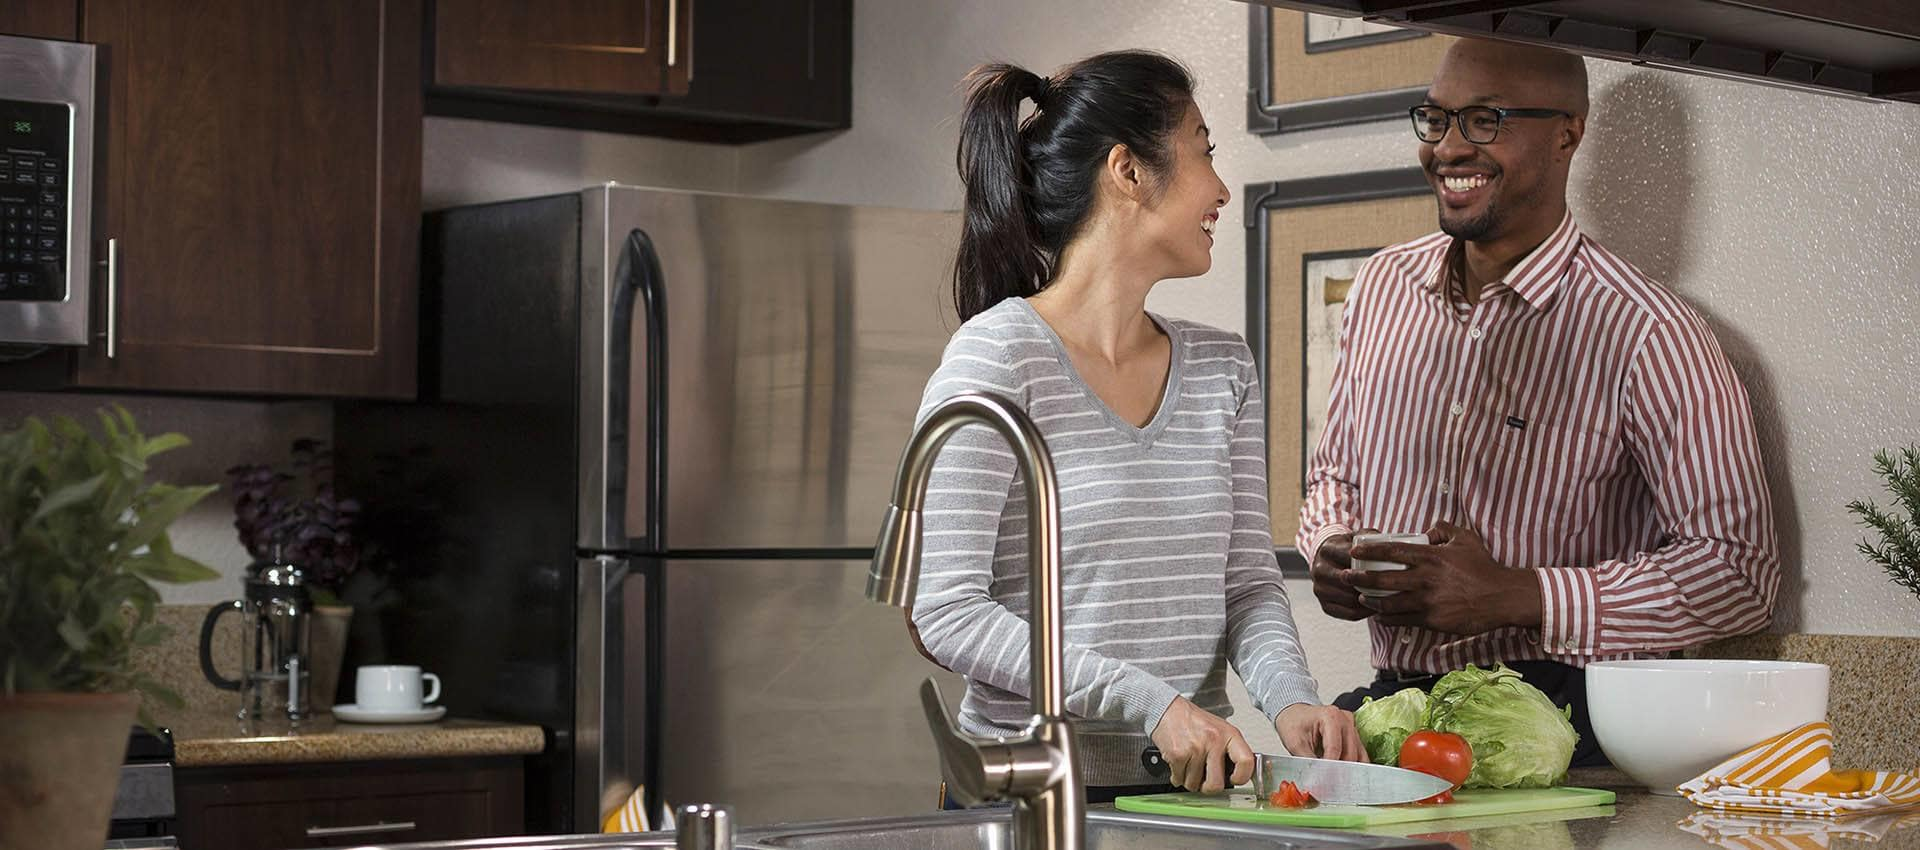 Couple in the kitchen at Reserve at Capital Center Apartment Homes in Rancho Cordova, California